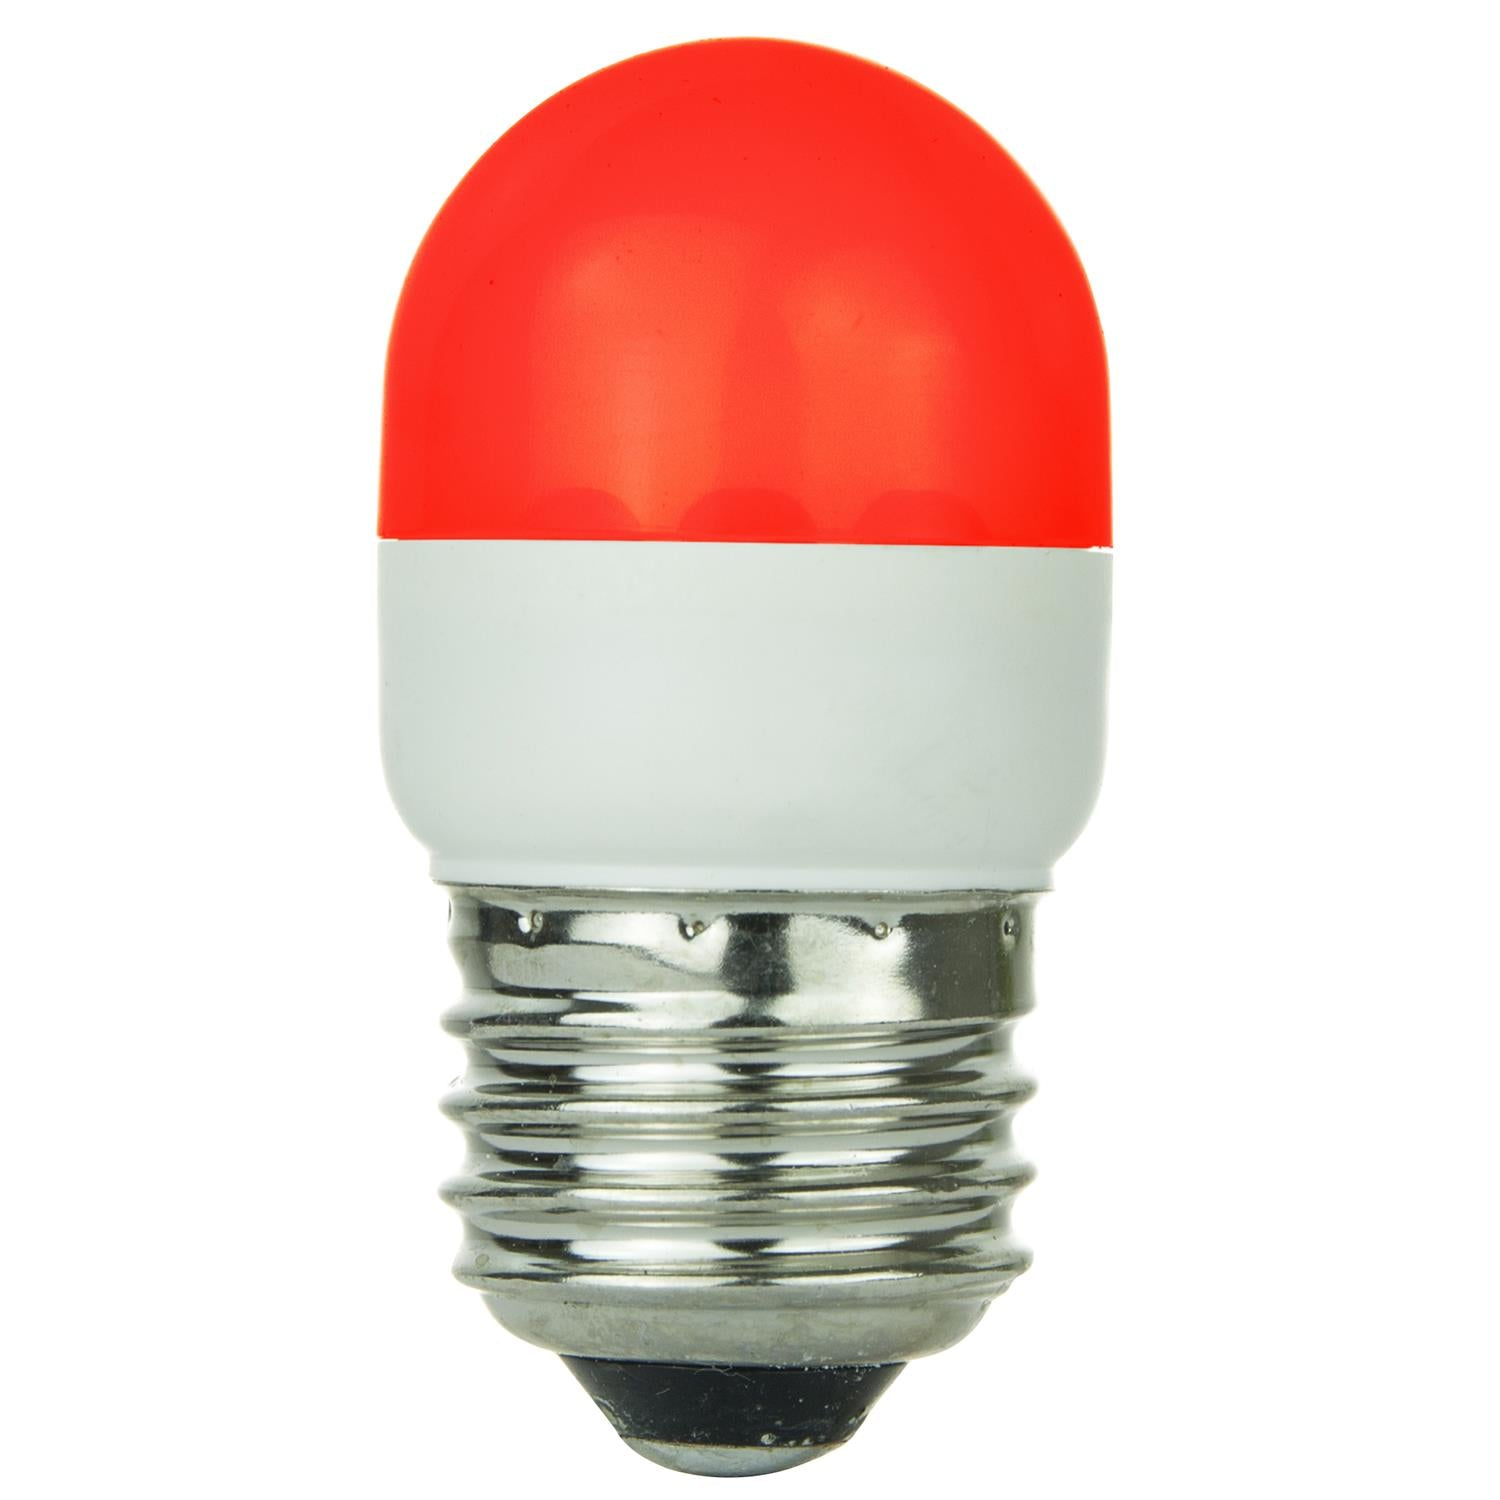 SUNLITE Red LED 0.5w Tubular T10 Medium Screw In Base Light Bulb